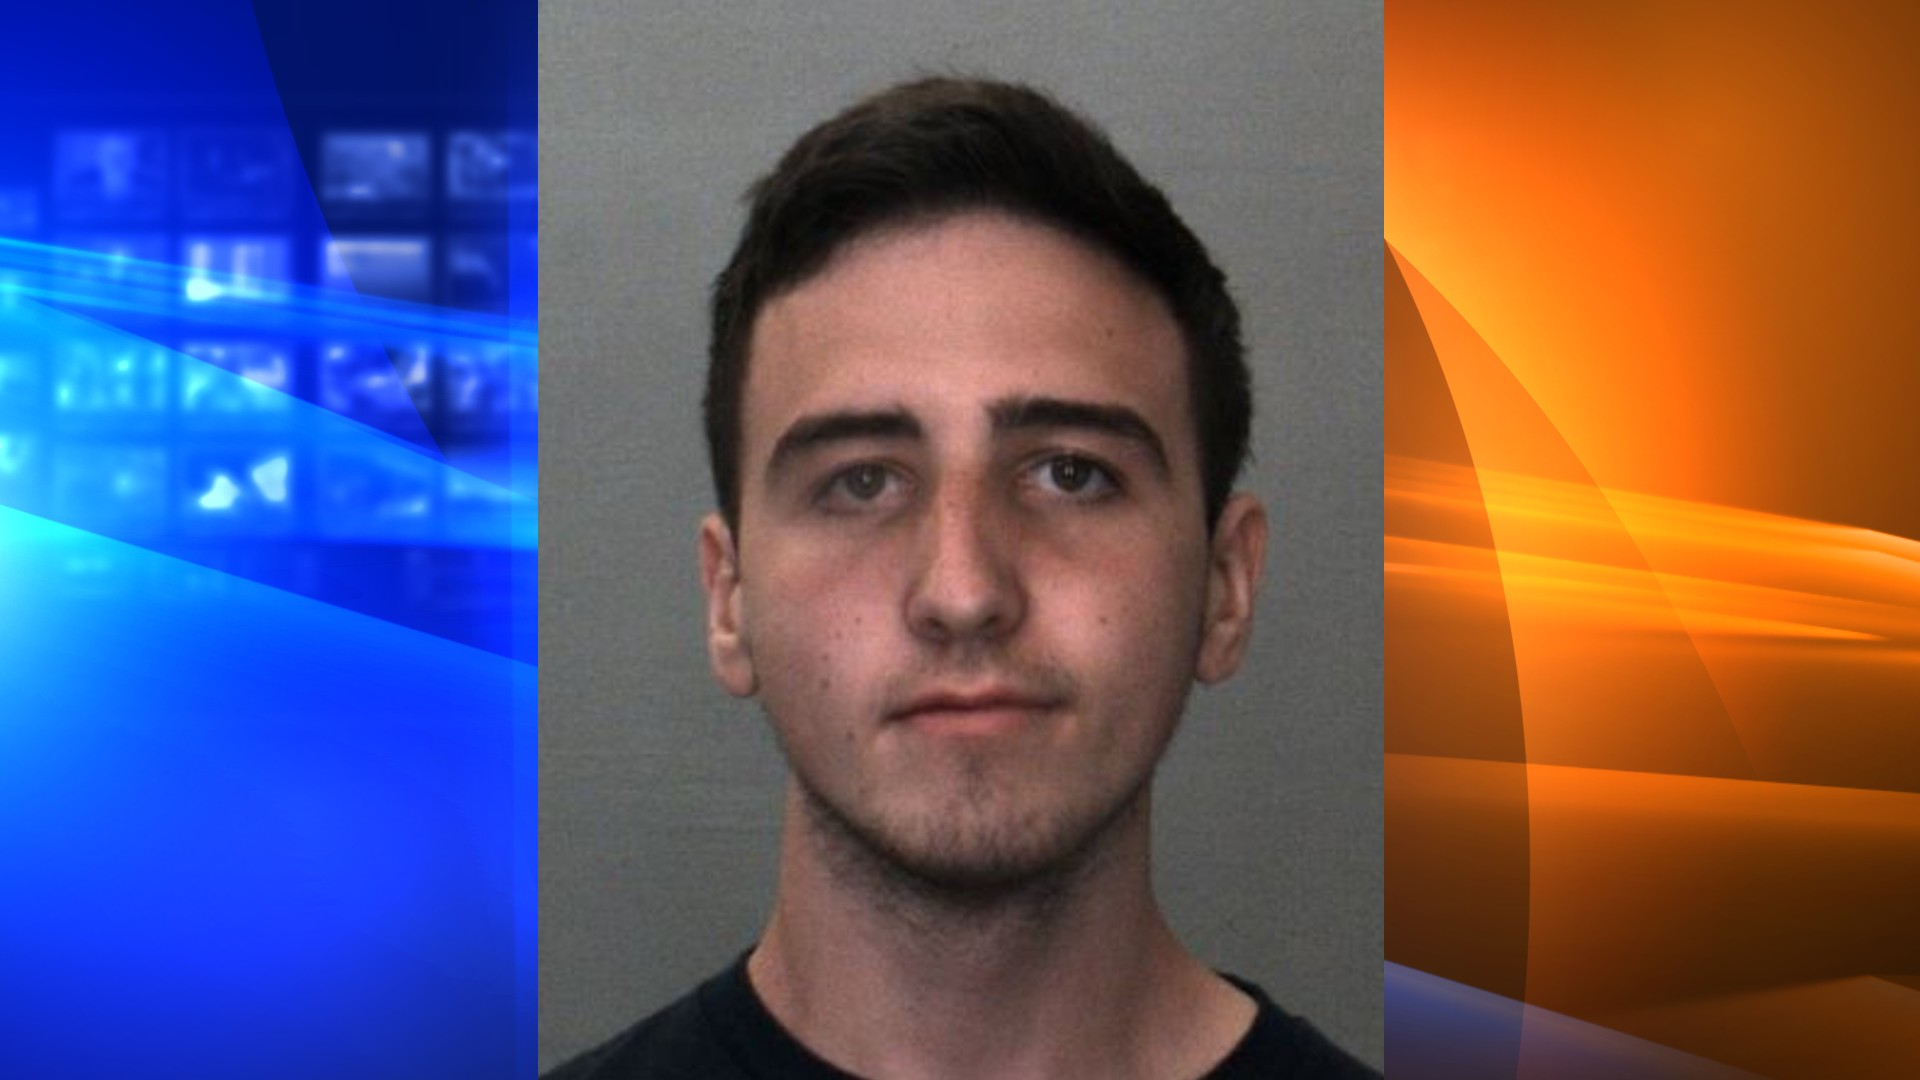 Jacob Wright is seen in a booking photo released by the San Bernardino County Sheriff's Department.